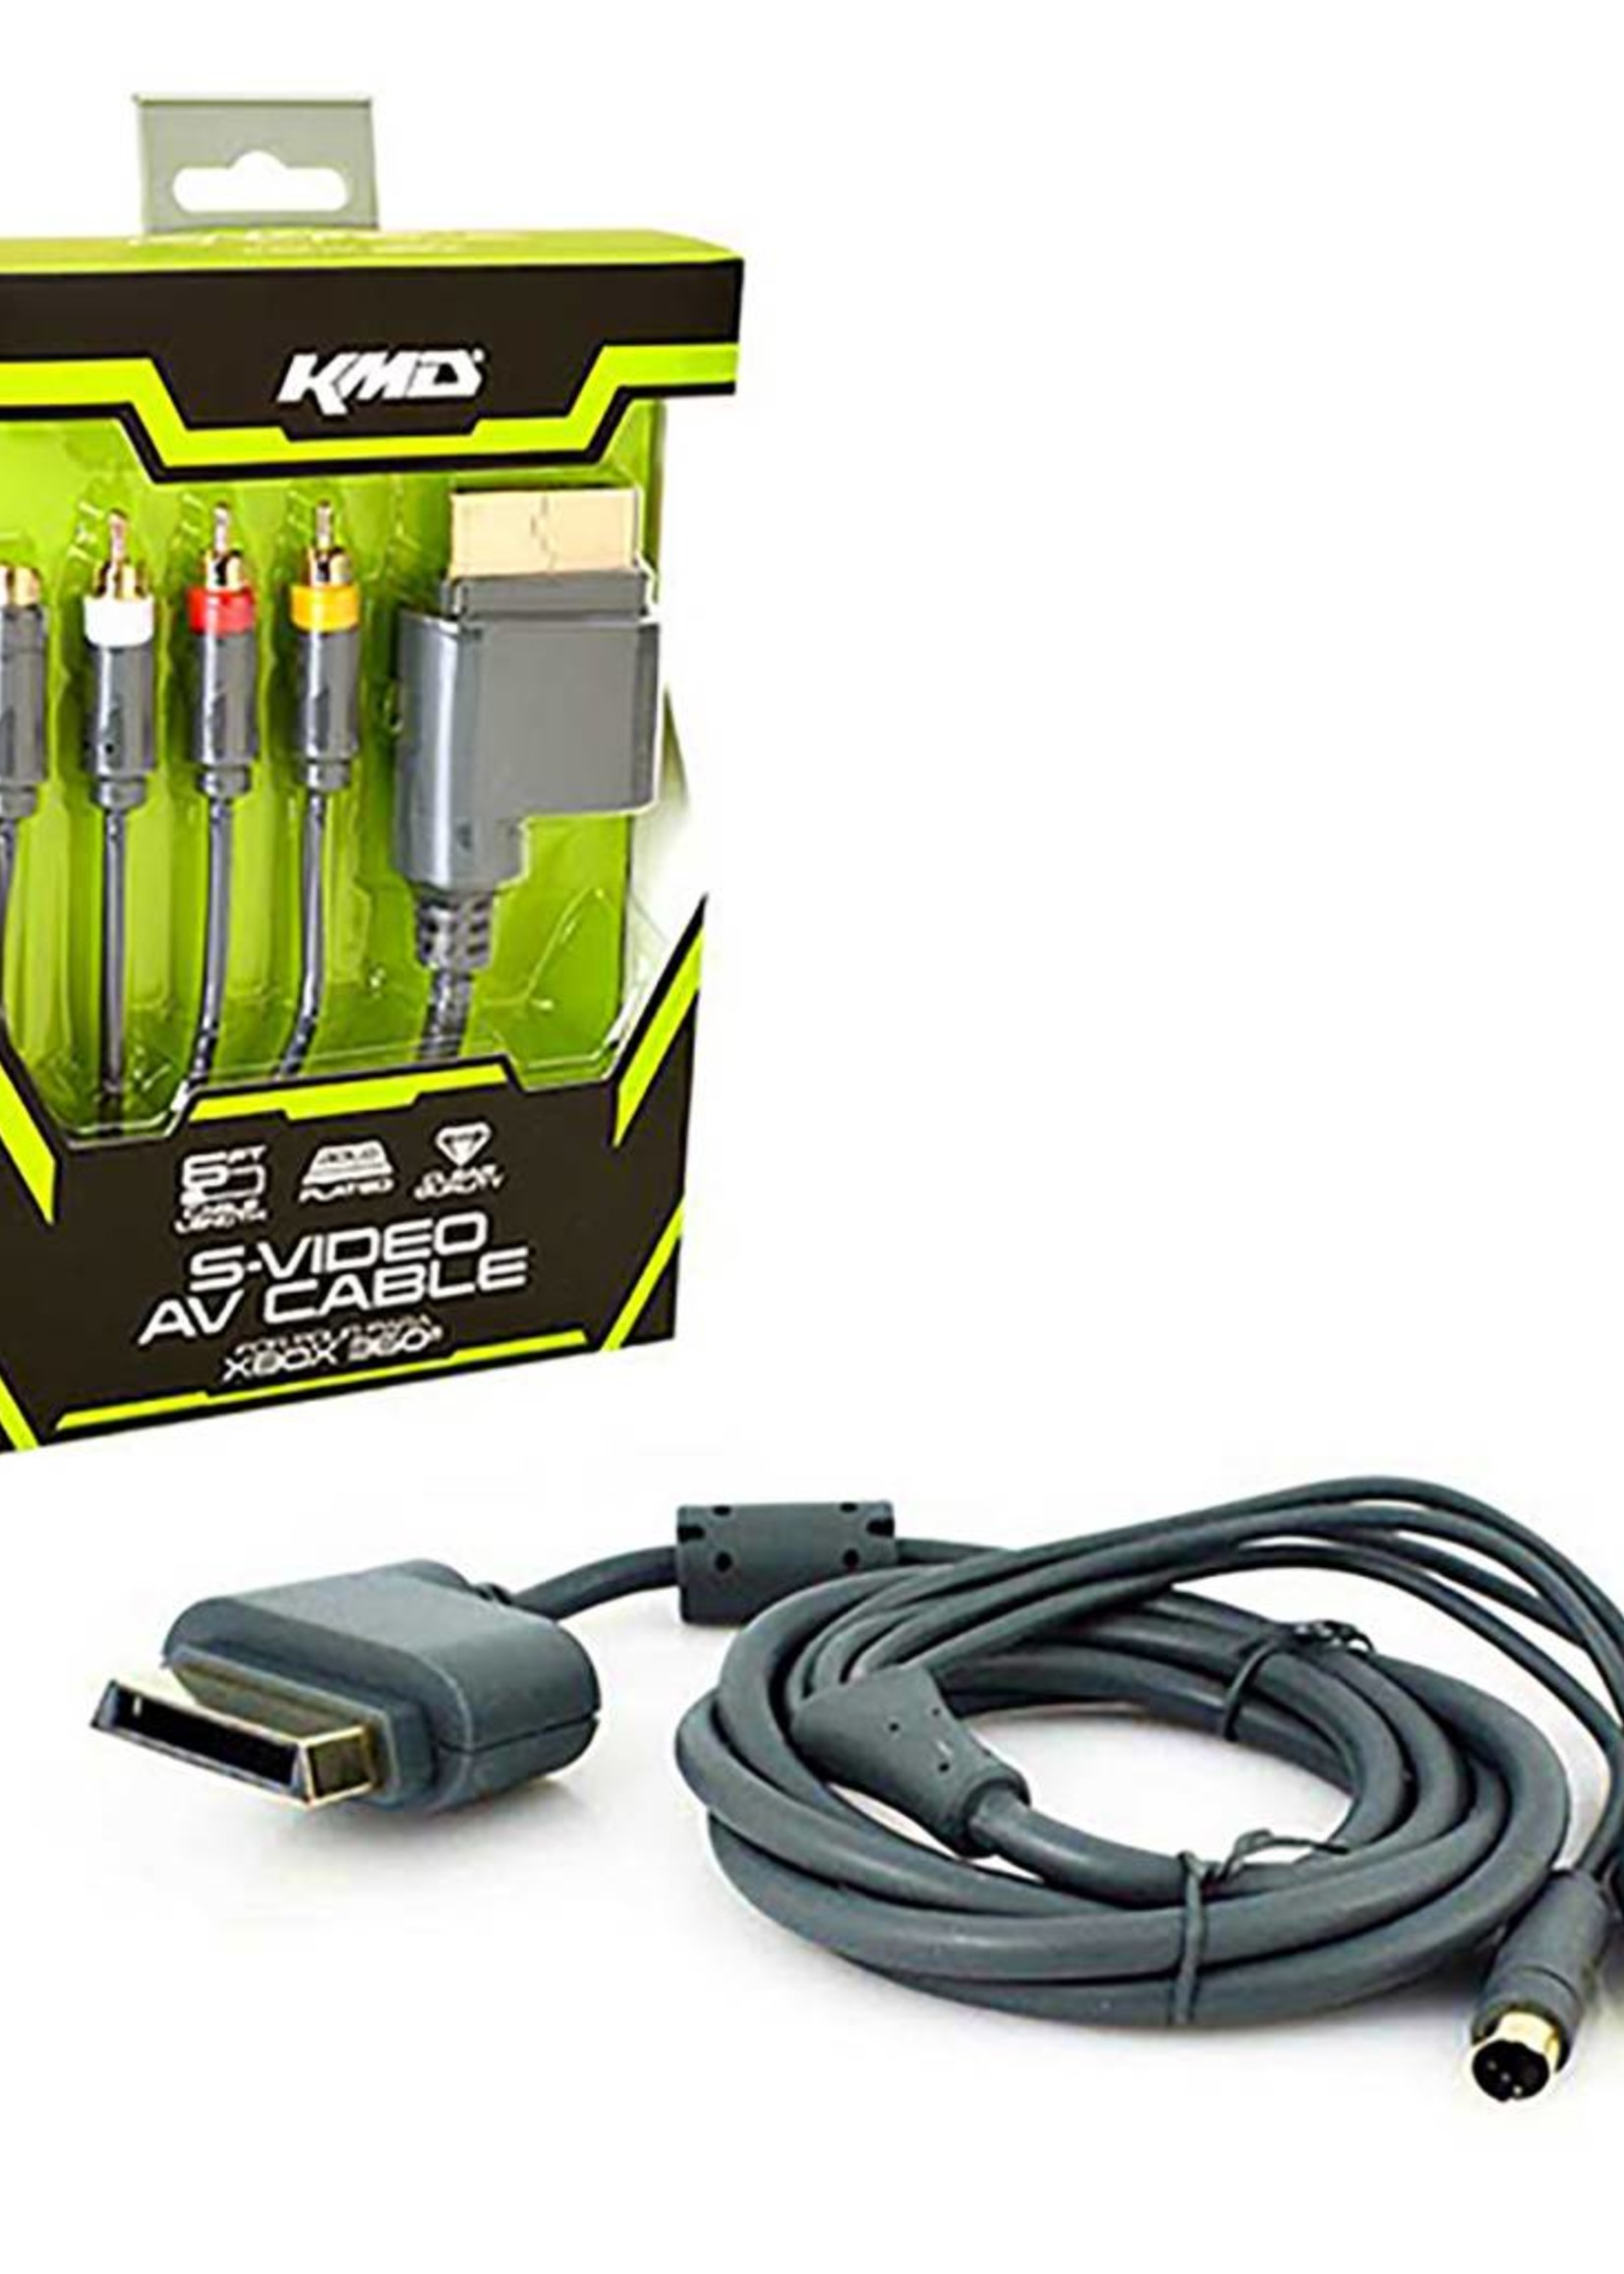 XB360 AV / S-Video Cable KMD Cable